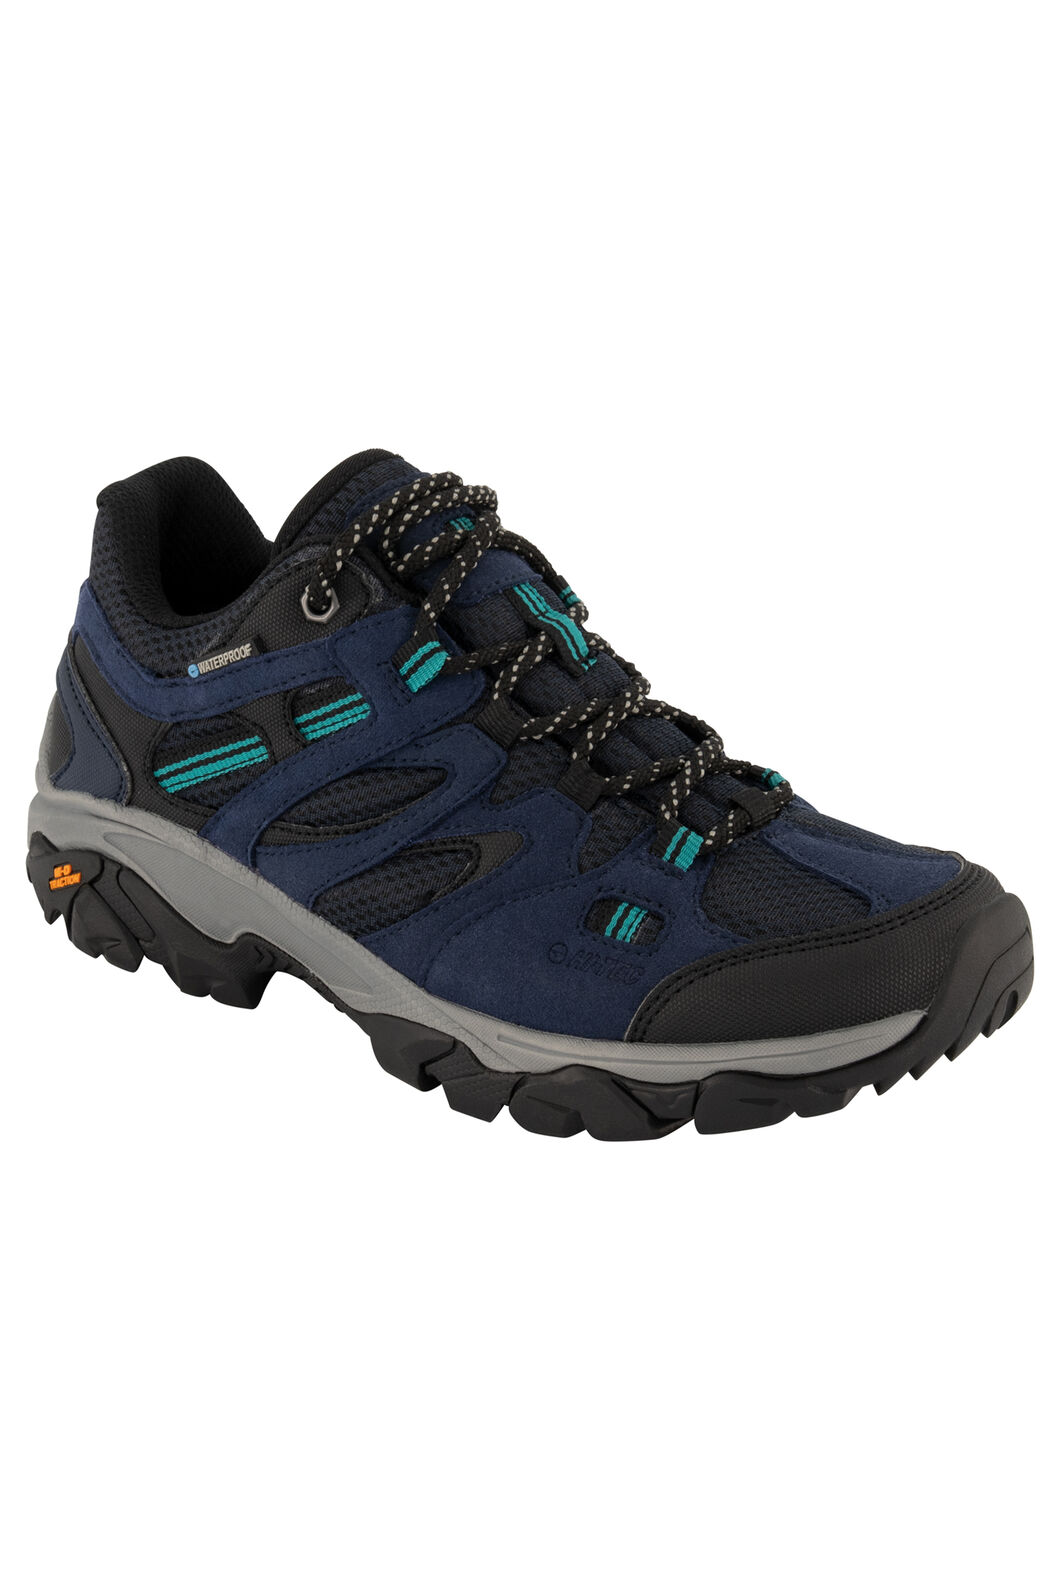 Hi-Tec Ravus Vent Lite WP Low Hiking Shoes — Women's, Midnight/Black Navigate, hi-res